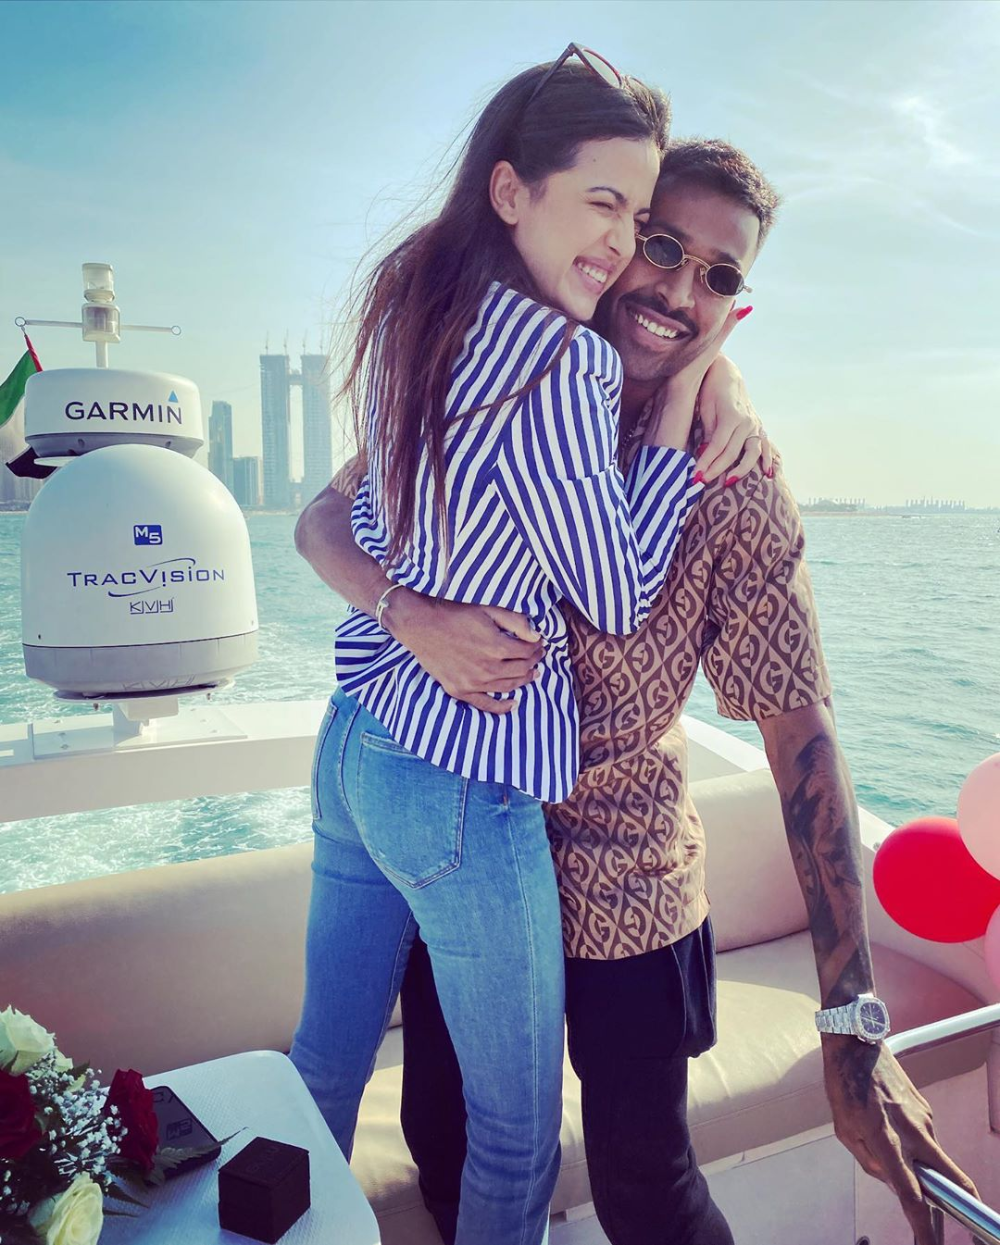 Hardik Pandya S Engagement To Natasa Stankovic On A Yacht Is Goals In 2020 Intimate Wedding Celebrity Weddings Newly Engaged Couple